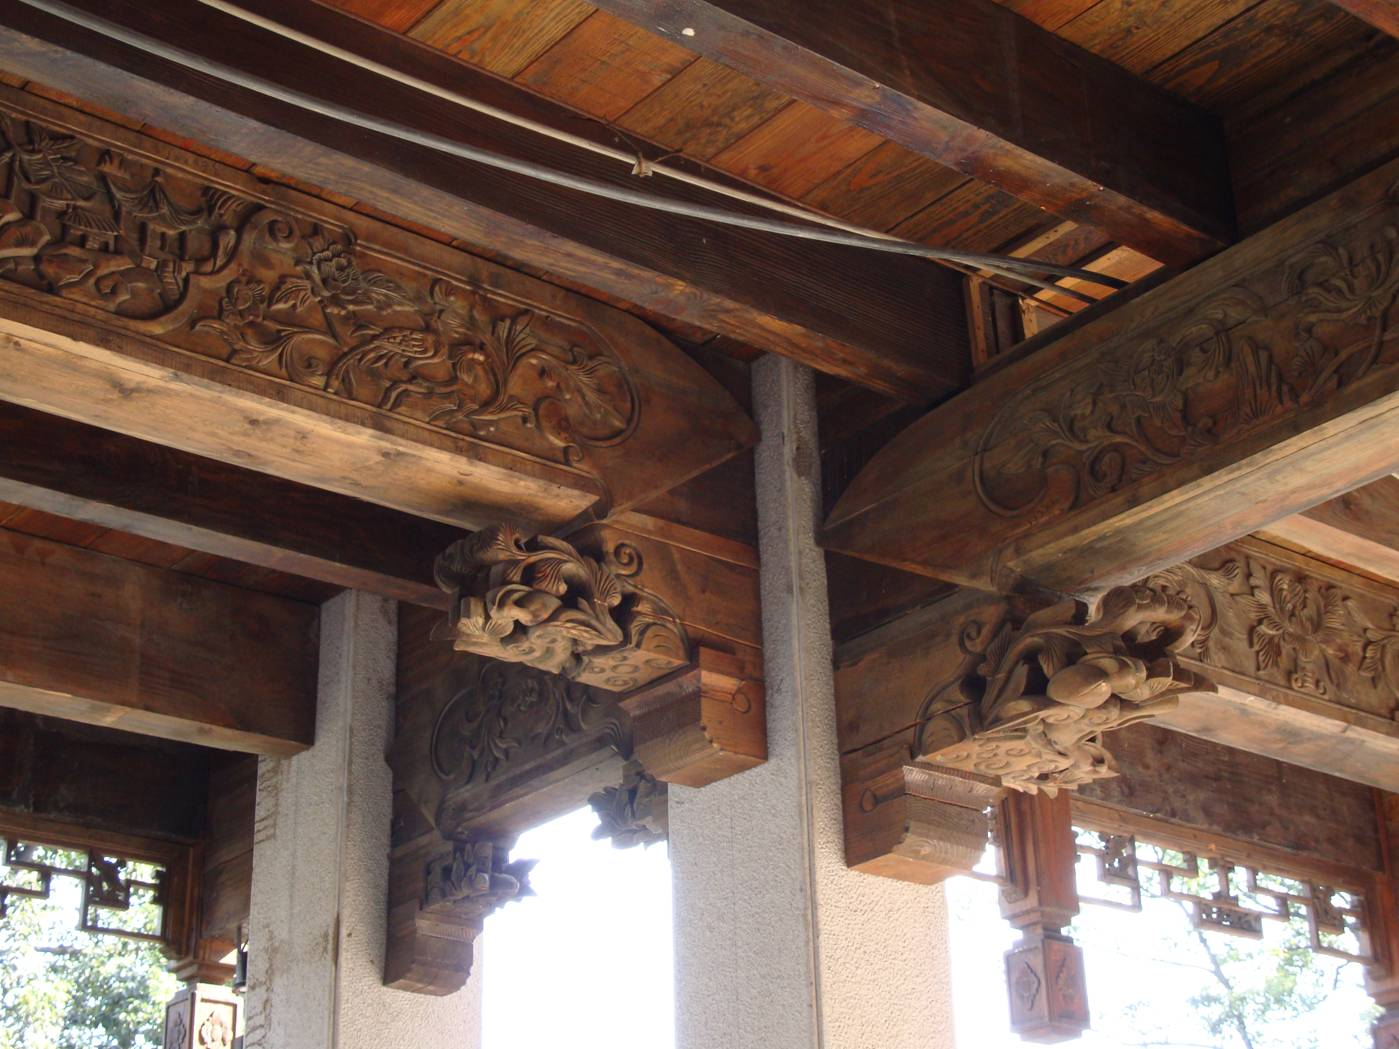 Picture:  Above her head, this elaborate classical post and beam ceiling.  Wuxi old city, Wuxi, China